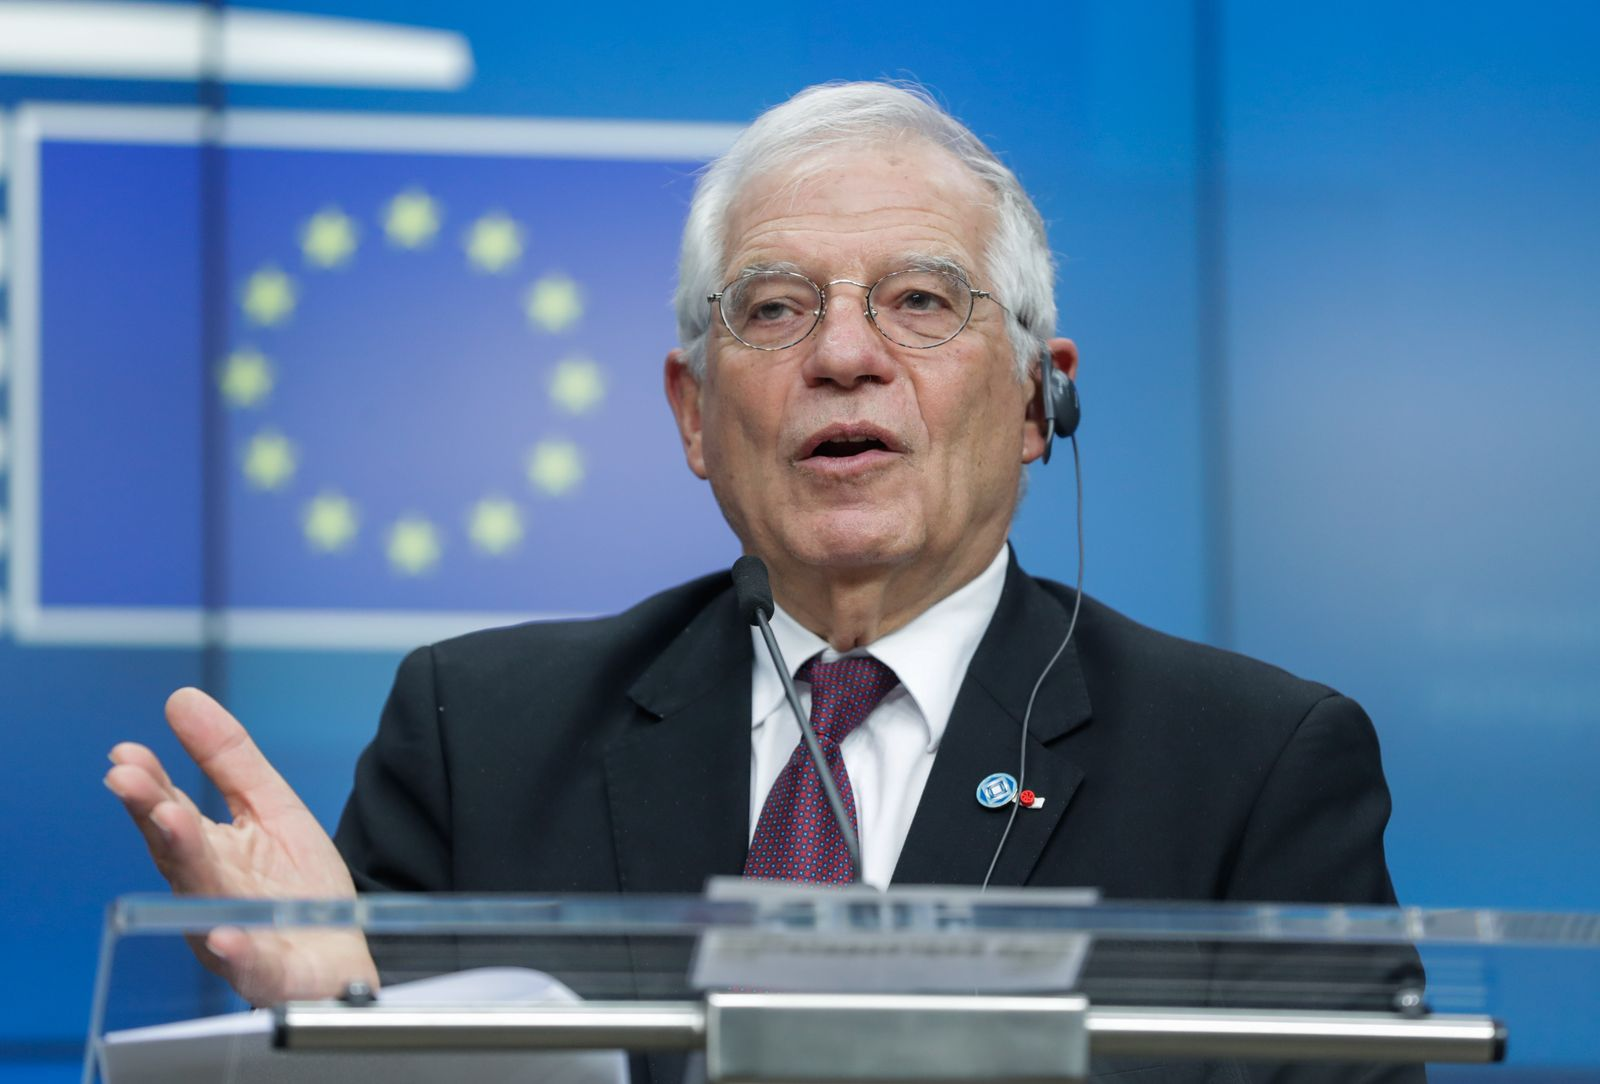 Press conference after EU Foreign Affairs Council in Brussels, Belgium - 20 Jan 2020